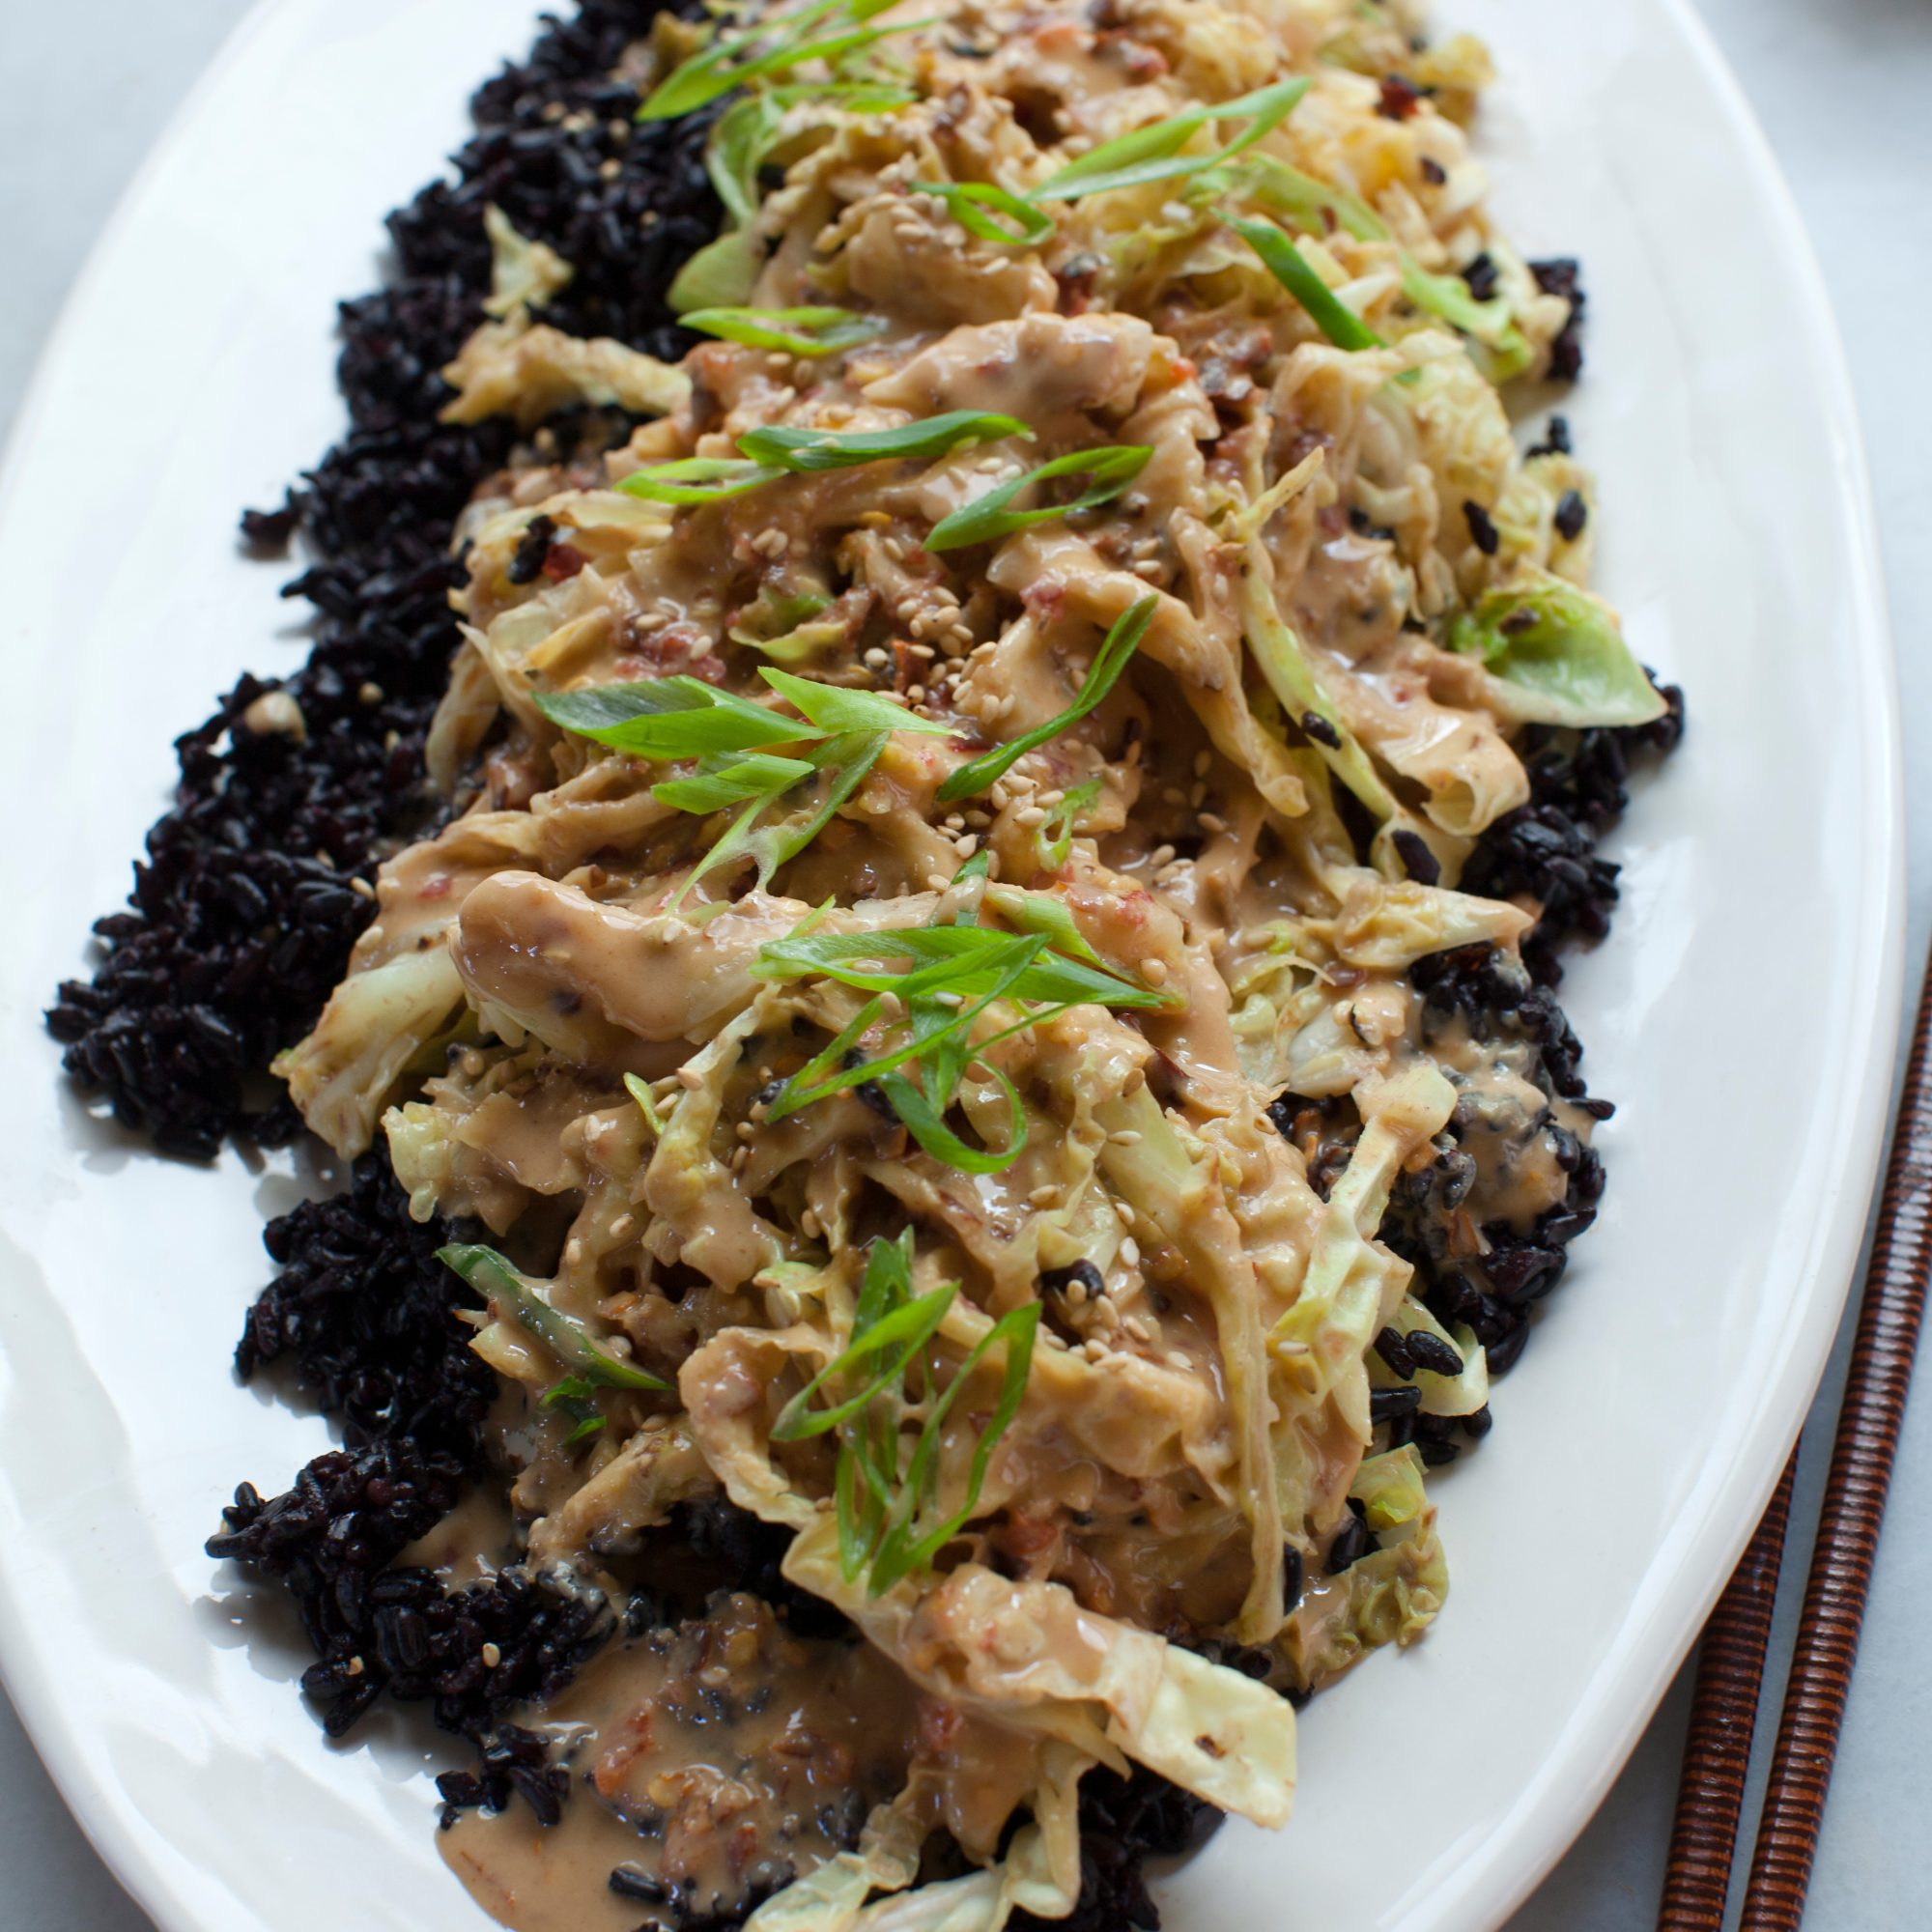 Black Rice with Stir-Fried Cabbage and Peanut Sauce